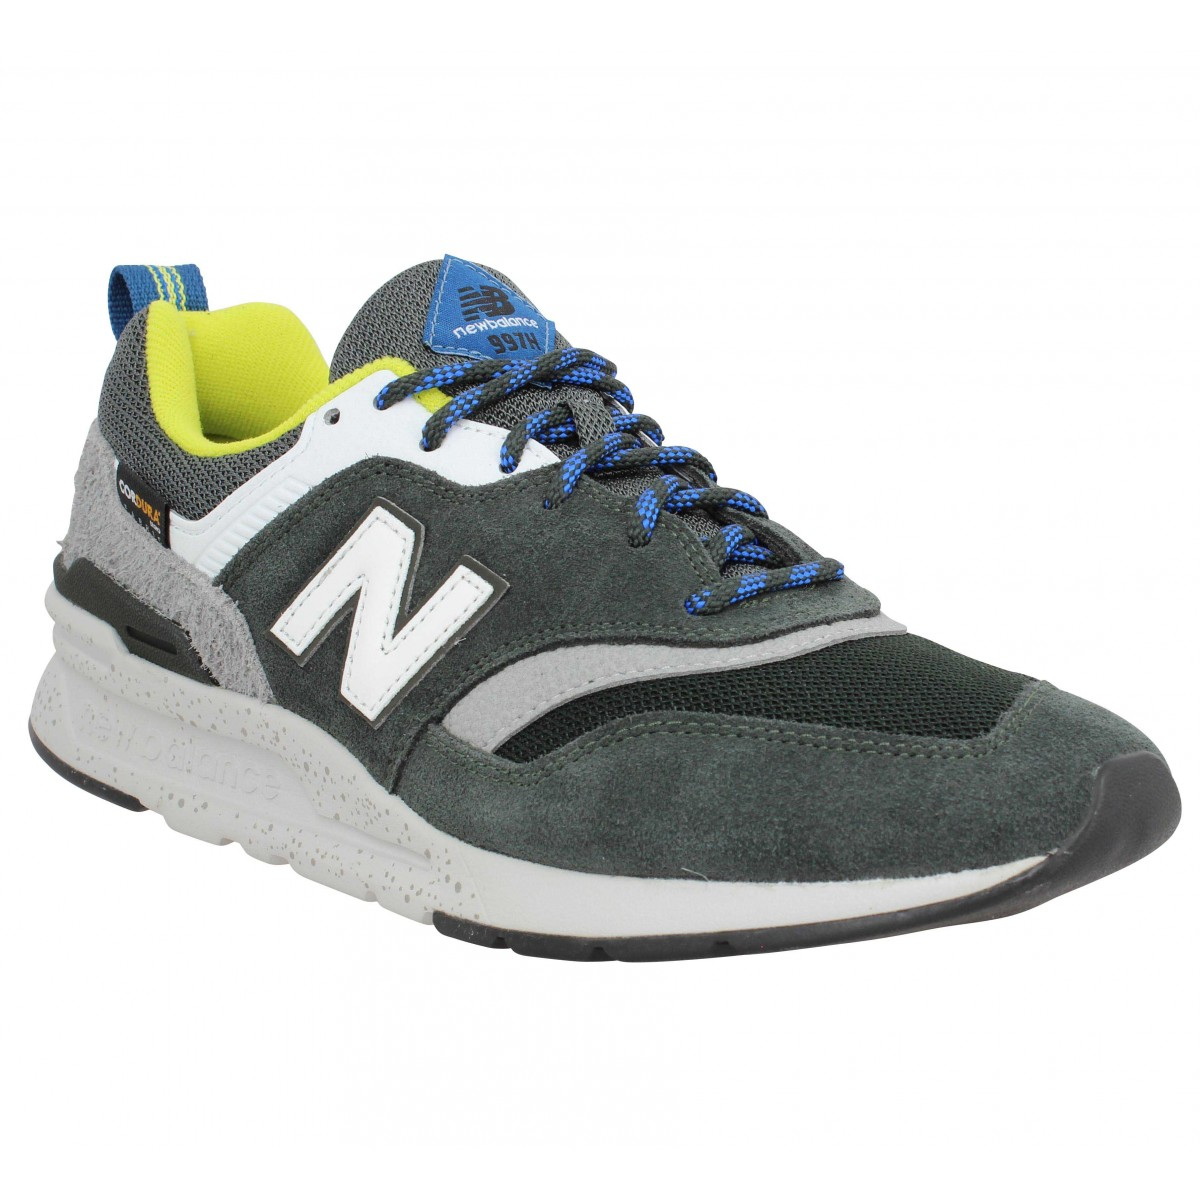 Baskets NEW BALANCE 997 velours toile Homme Kaki